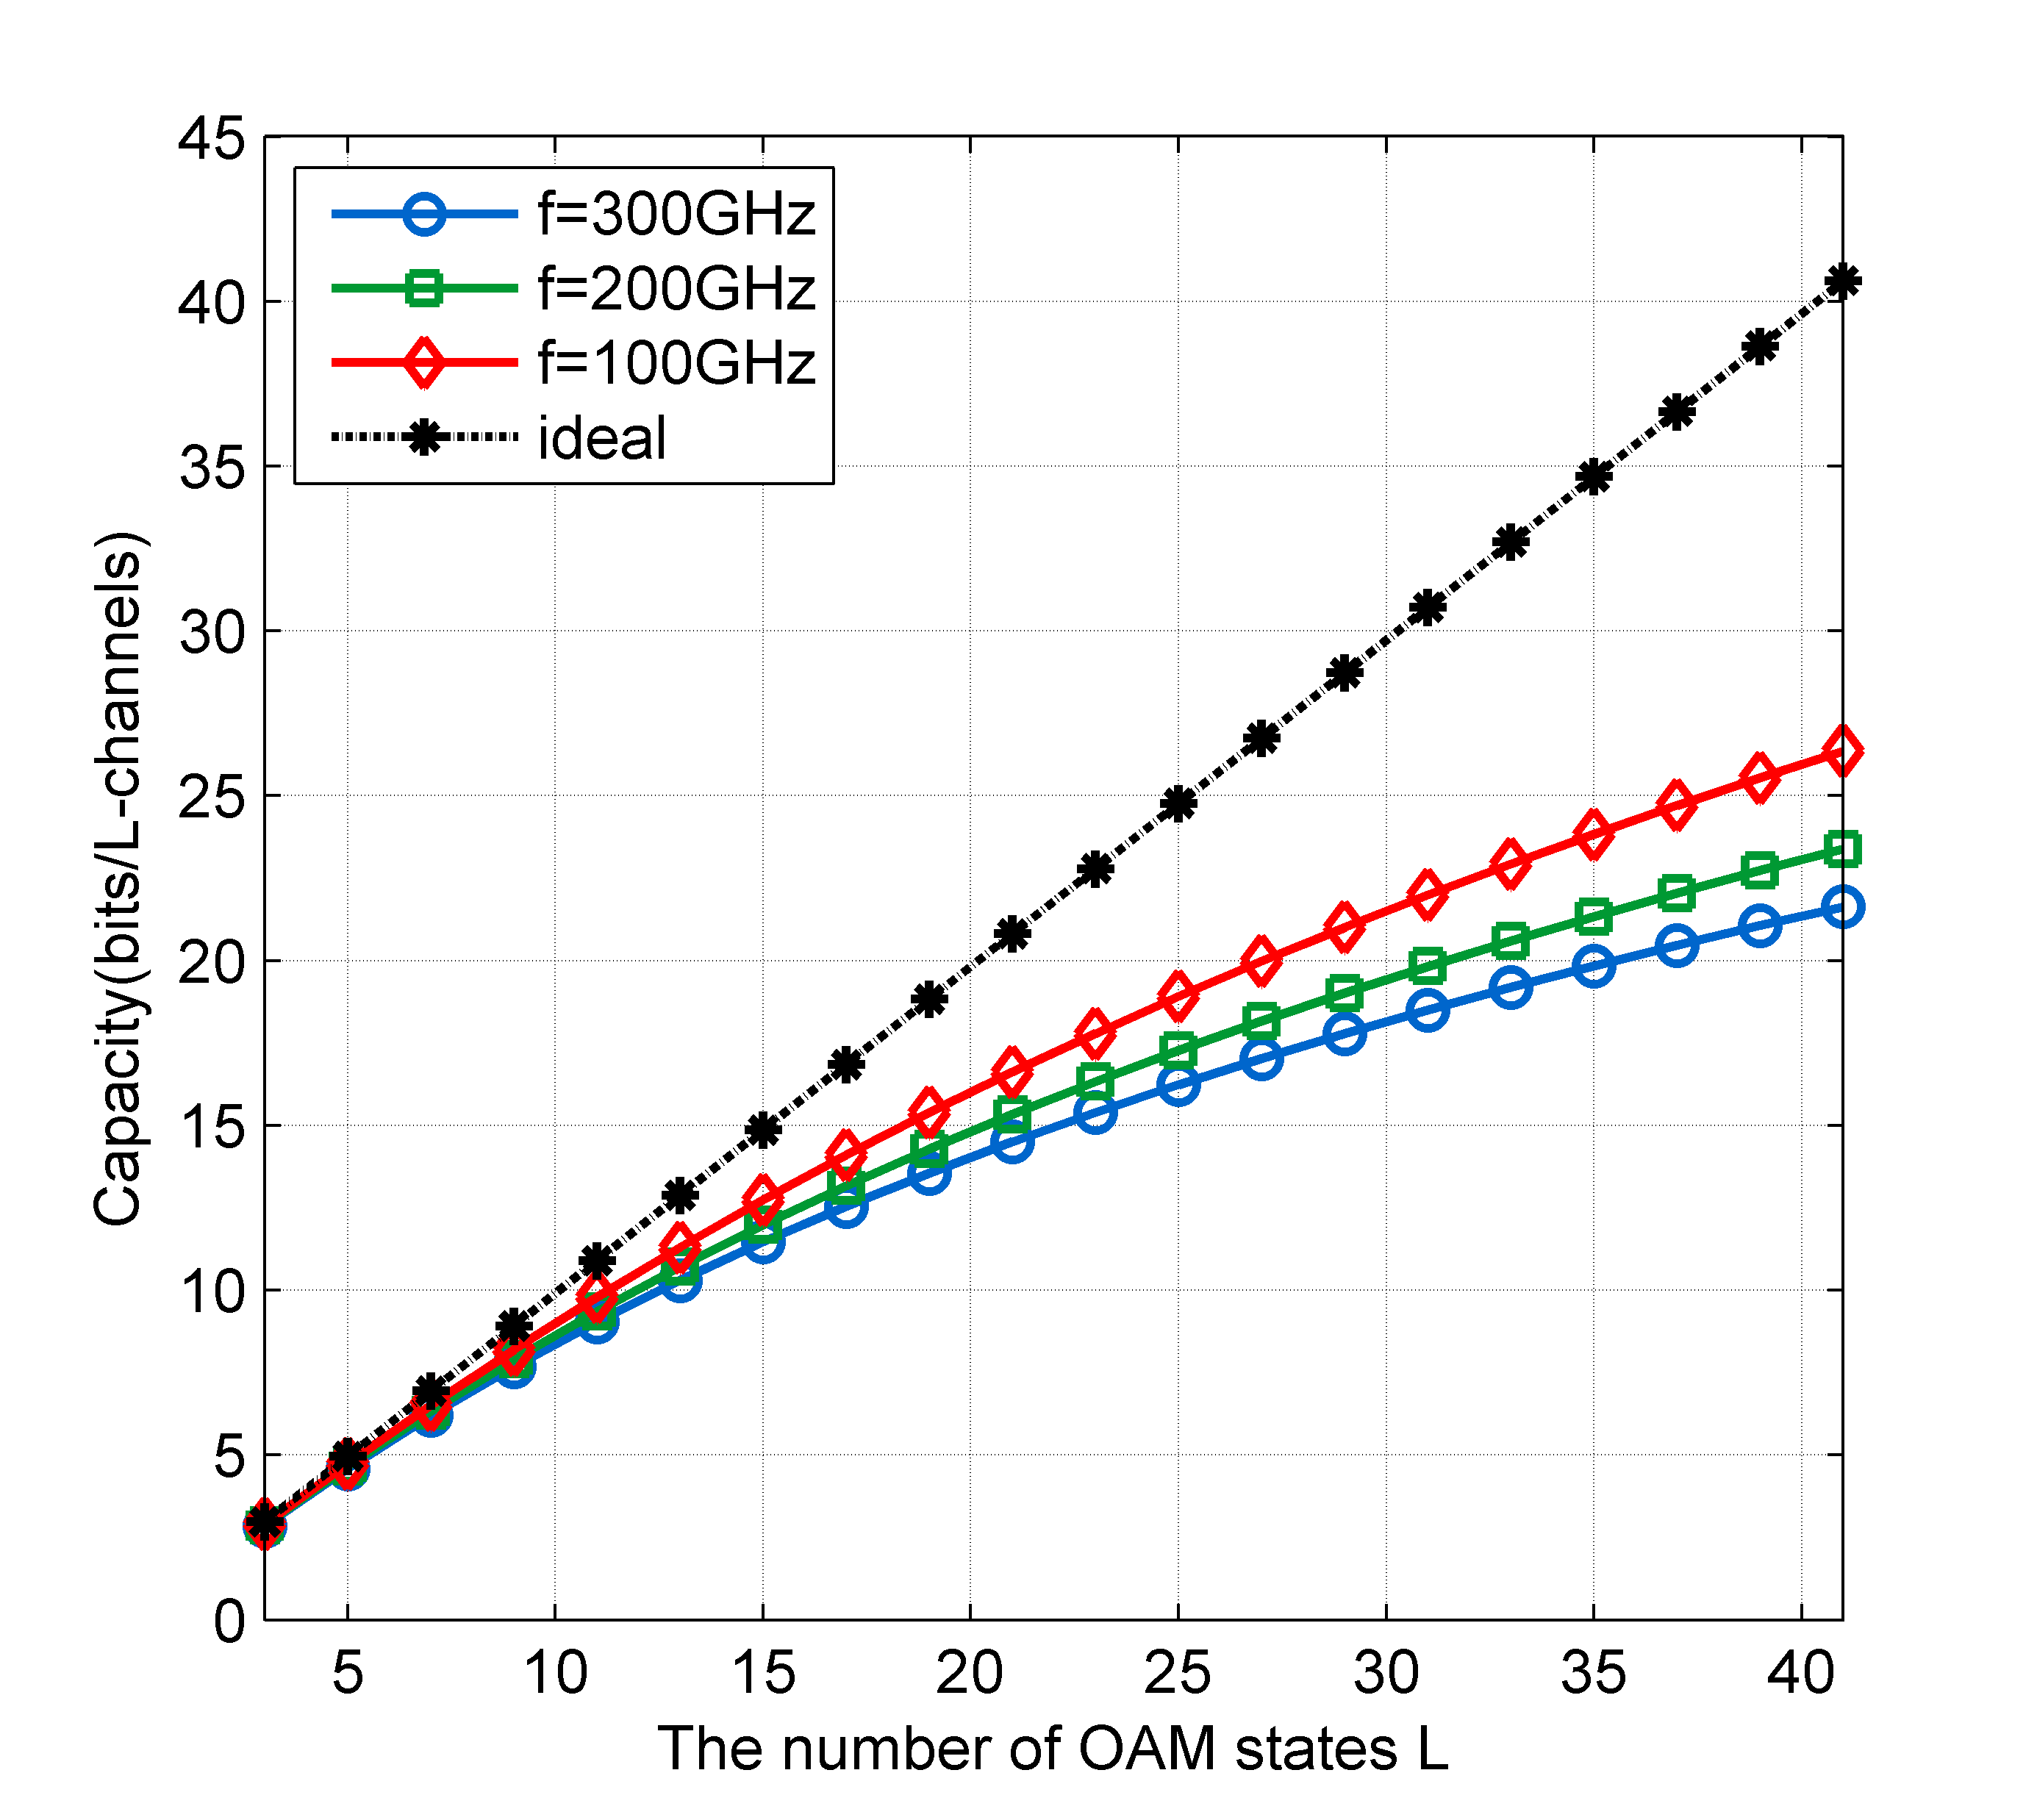 Impact of the number of OAM states on the capacity of OAM-mmWave communication systems with different transmission frequencies.